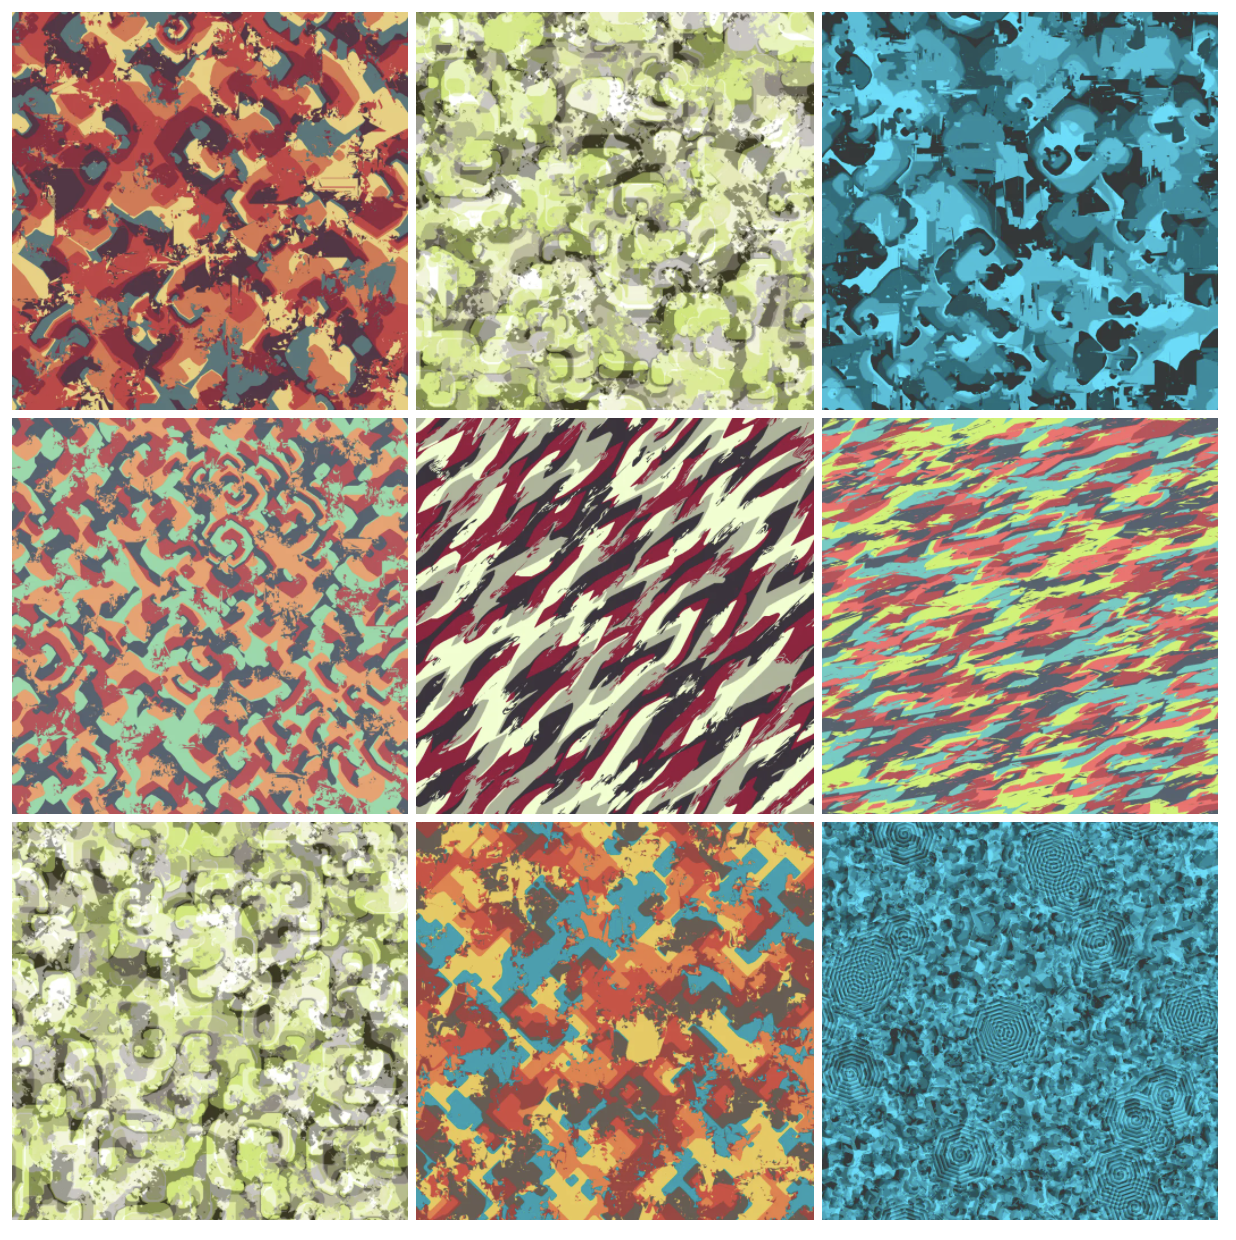 Neighborhoods: Experimenting with Cyclic Cellular Automata